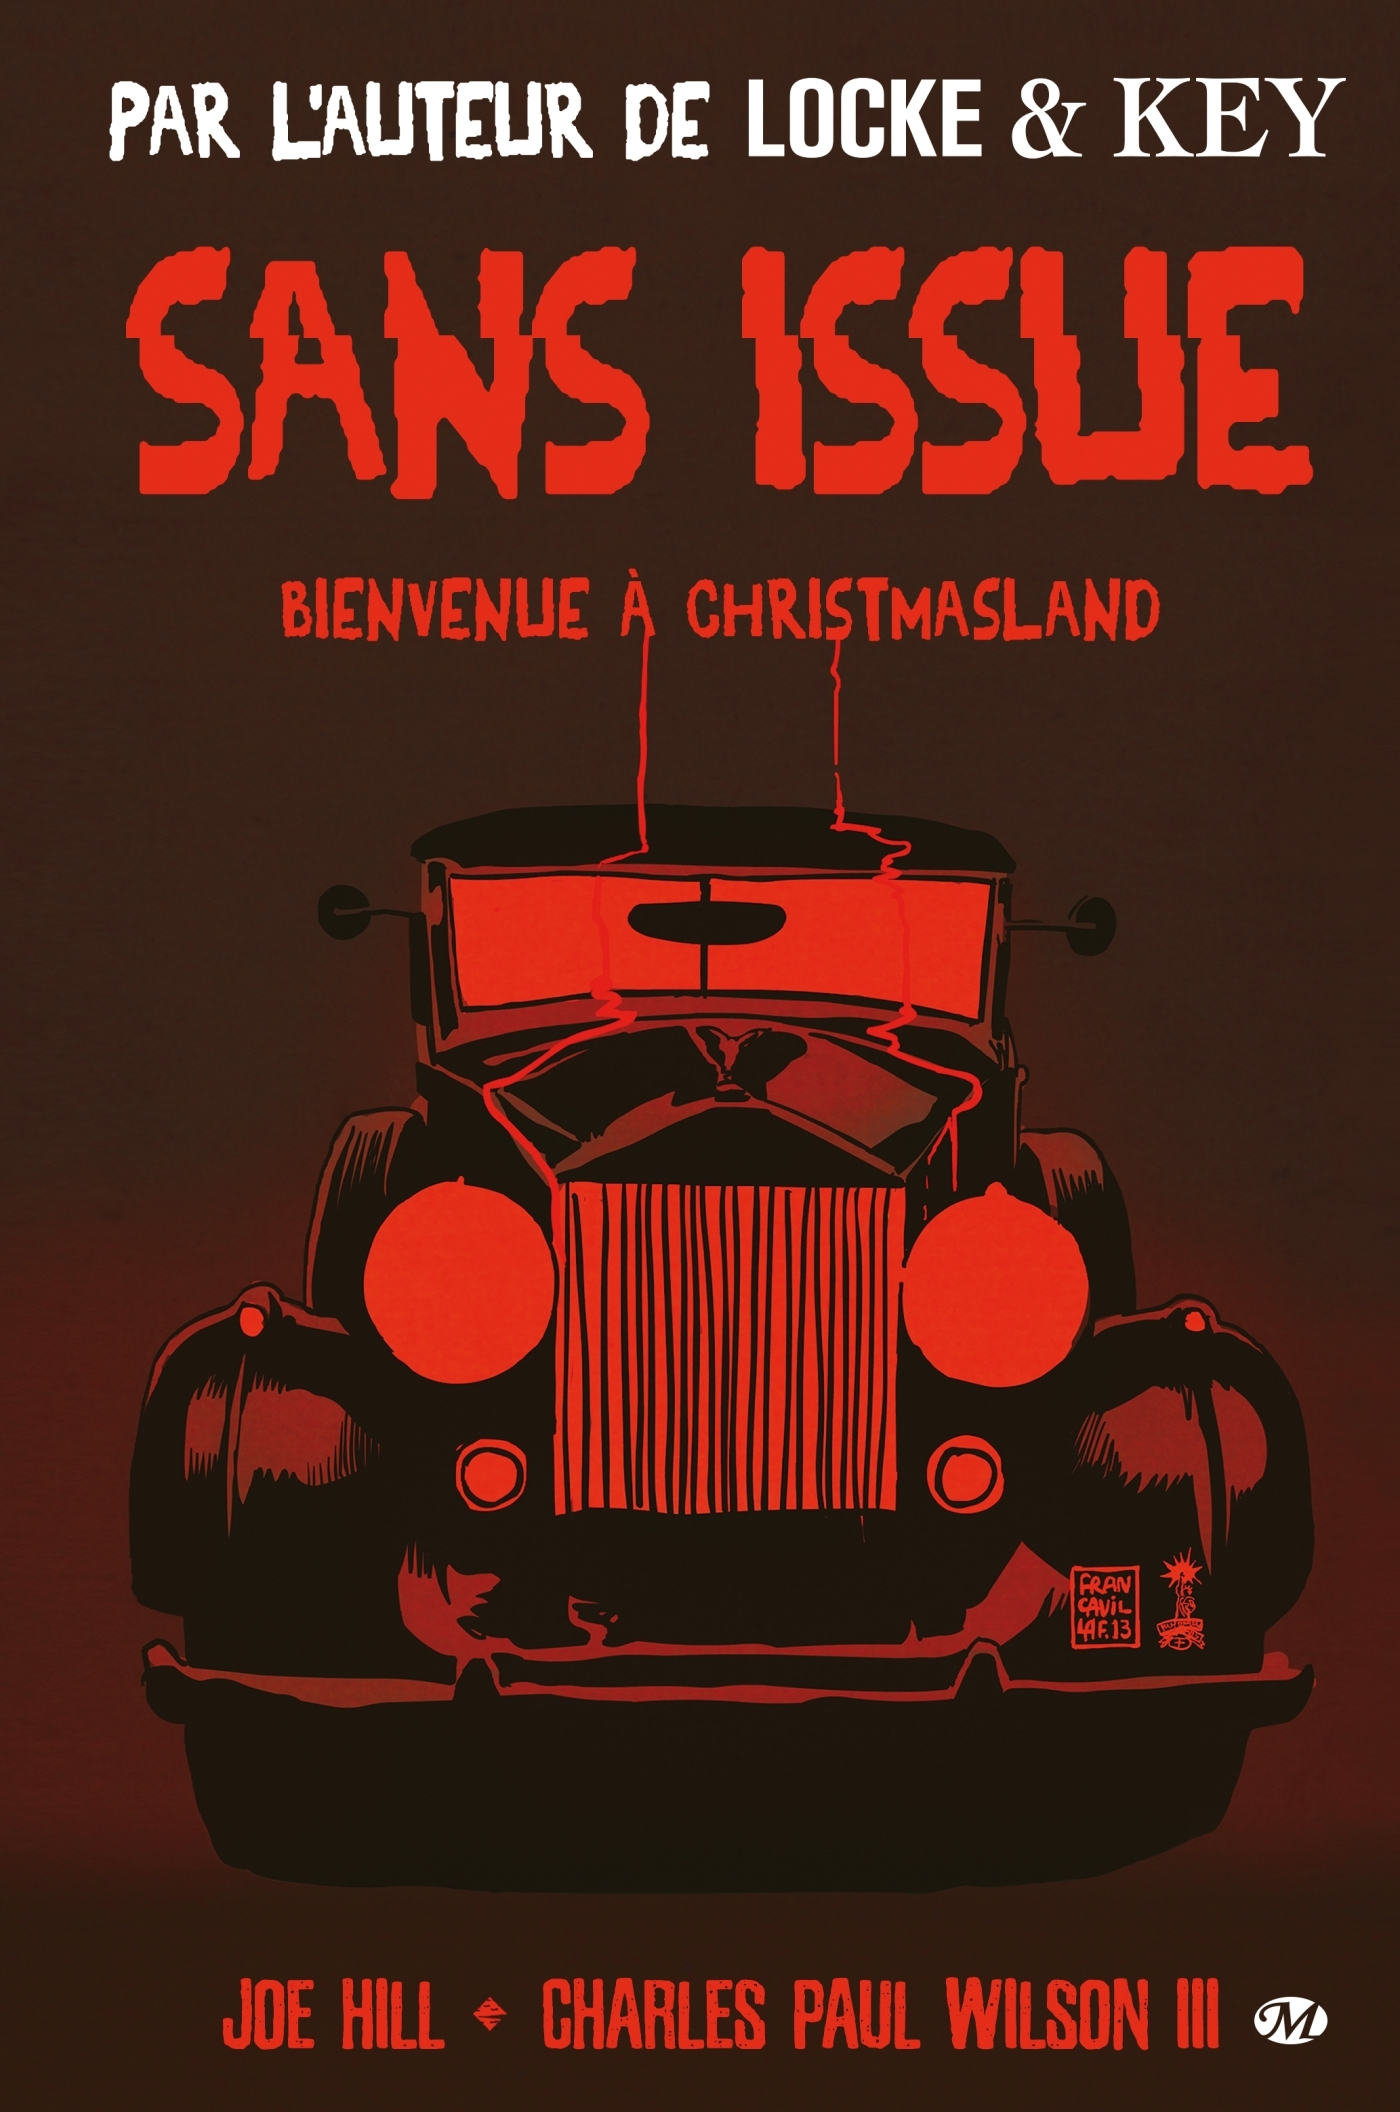 SANS ISSUE, BIENVENUE A CHRISTMASLAND